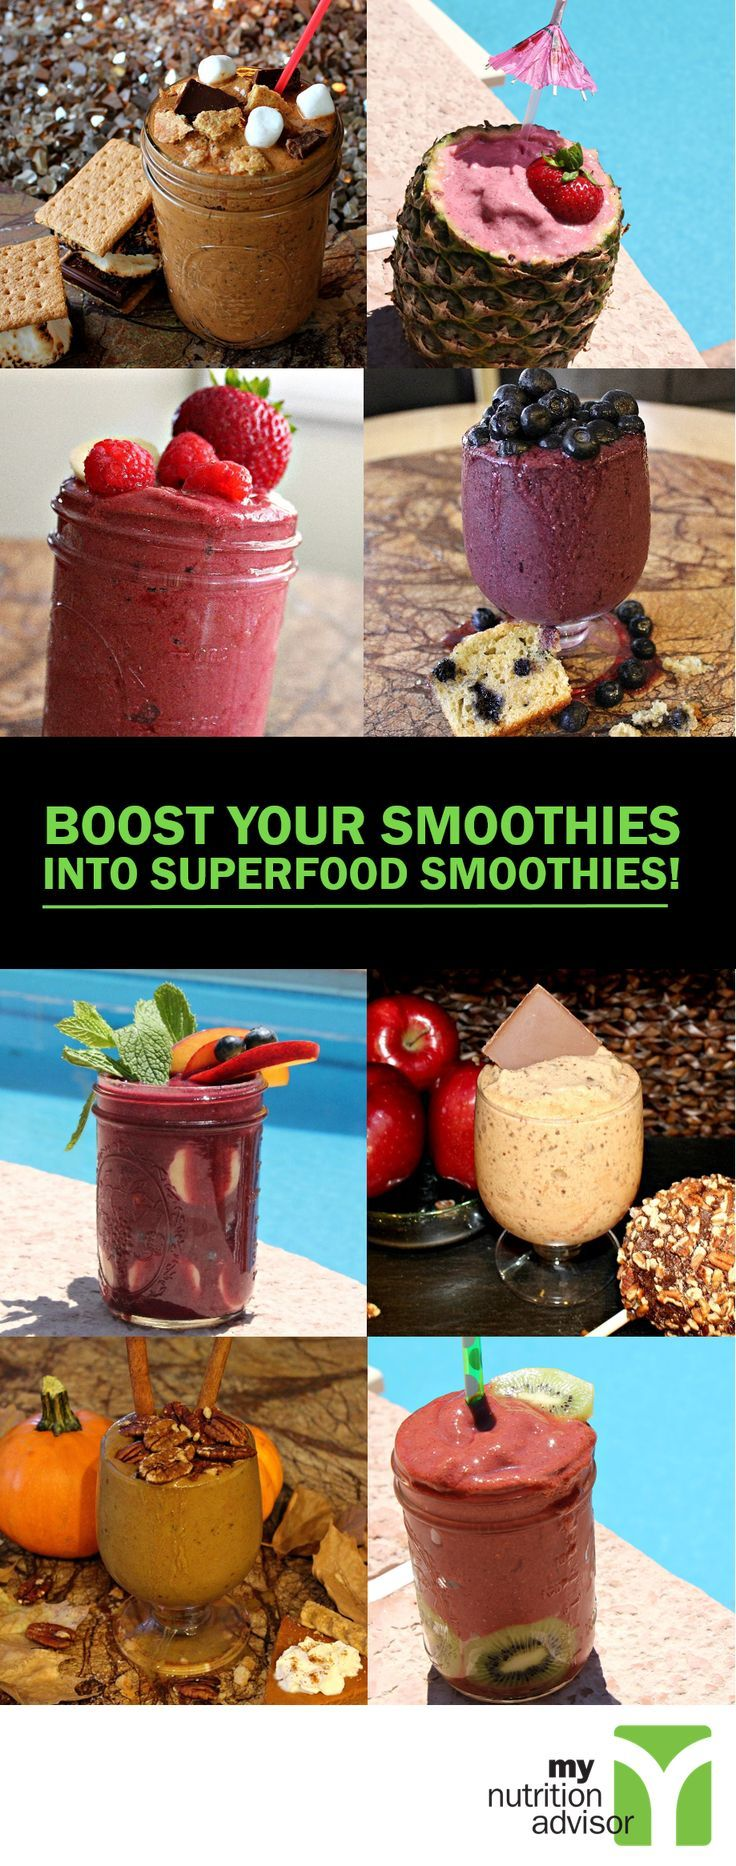 These are the best superfood smoothie recipes available.  Each recipe is crafted for great taste, low calorie, and high nutrition.  Browse through over 65 superfood smoothie recipes on our website: http://mynutritionadvisor.com/recipes.html  #mnasmoothie Employee motivation,motivation